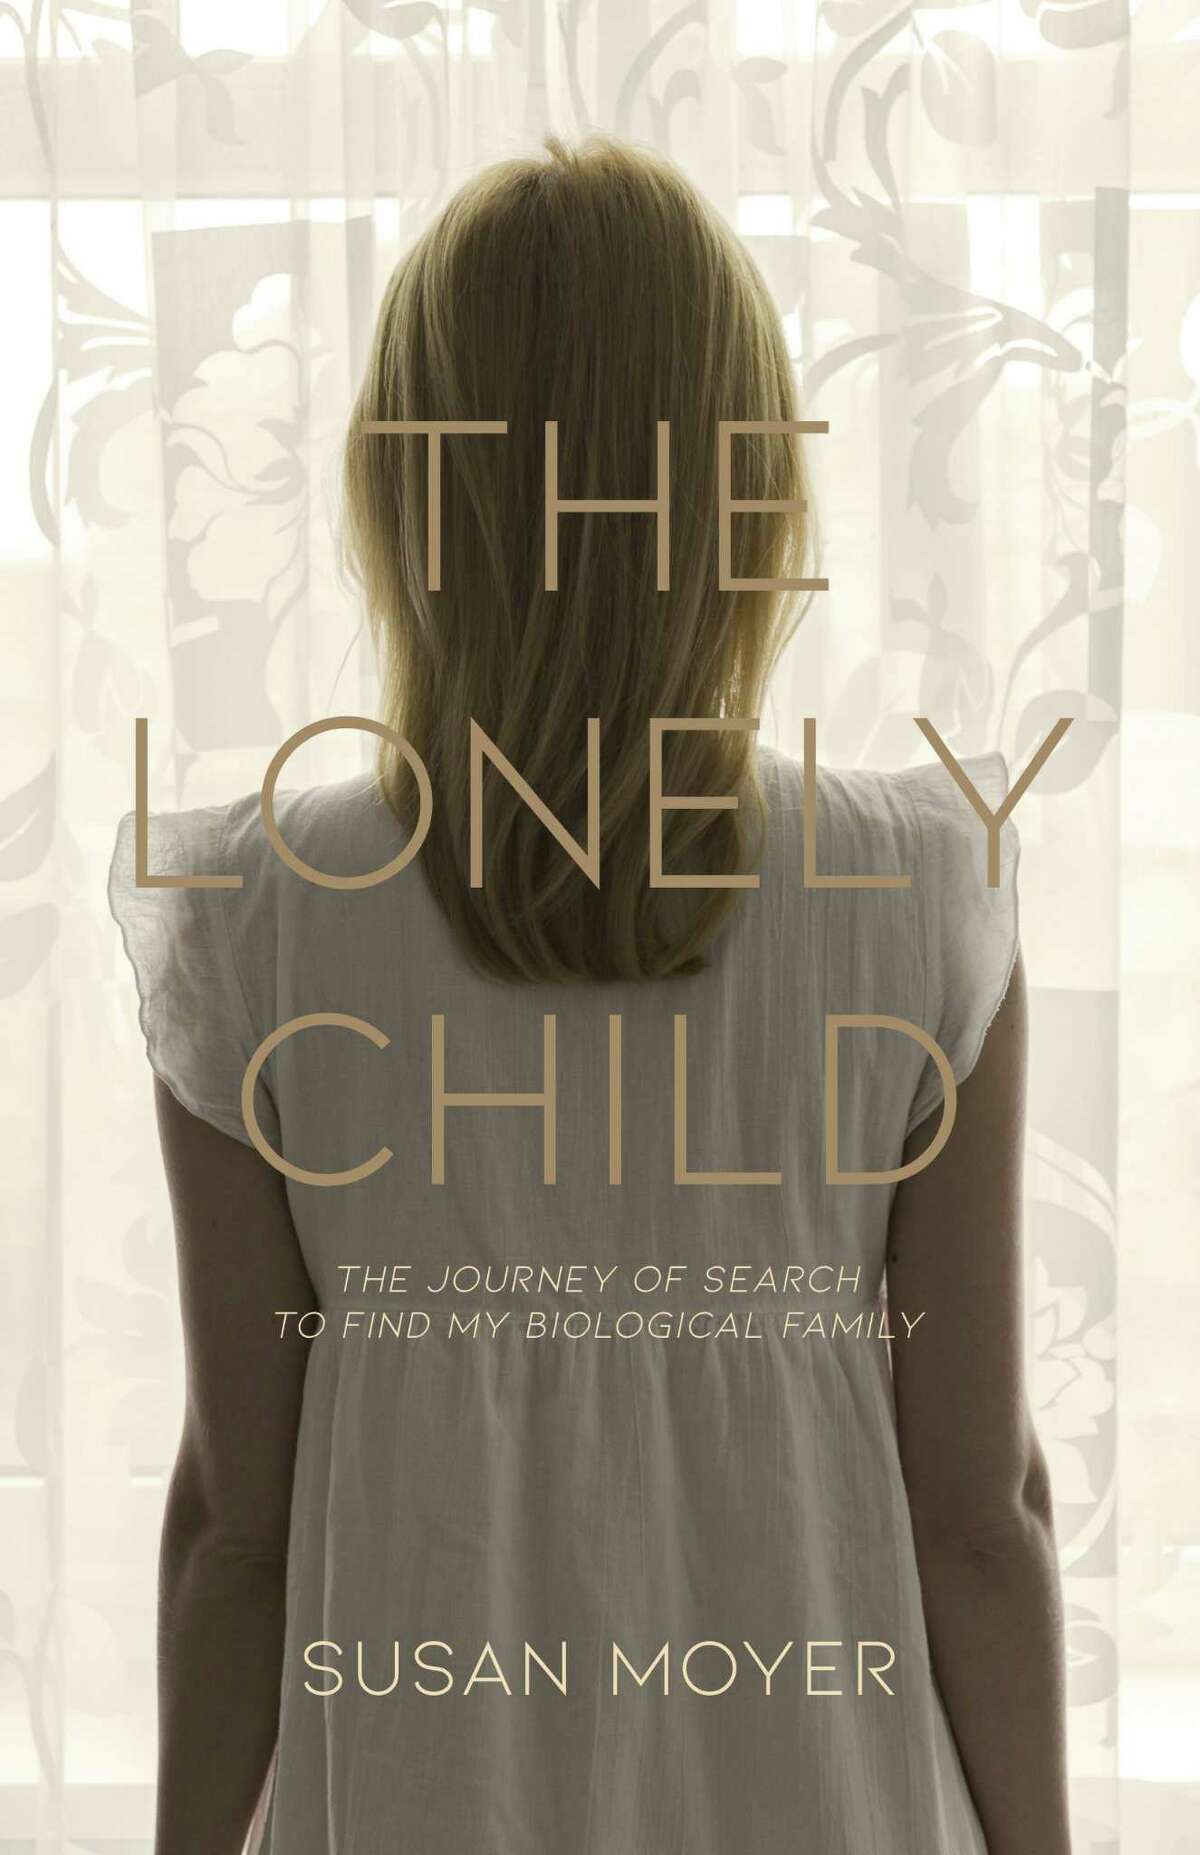 The cover of Susan Moyer's book about finding her biological family.